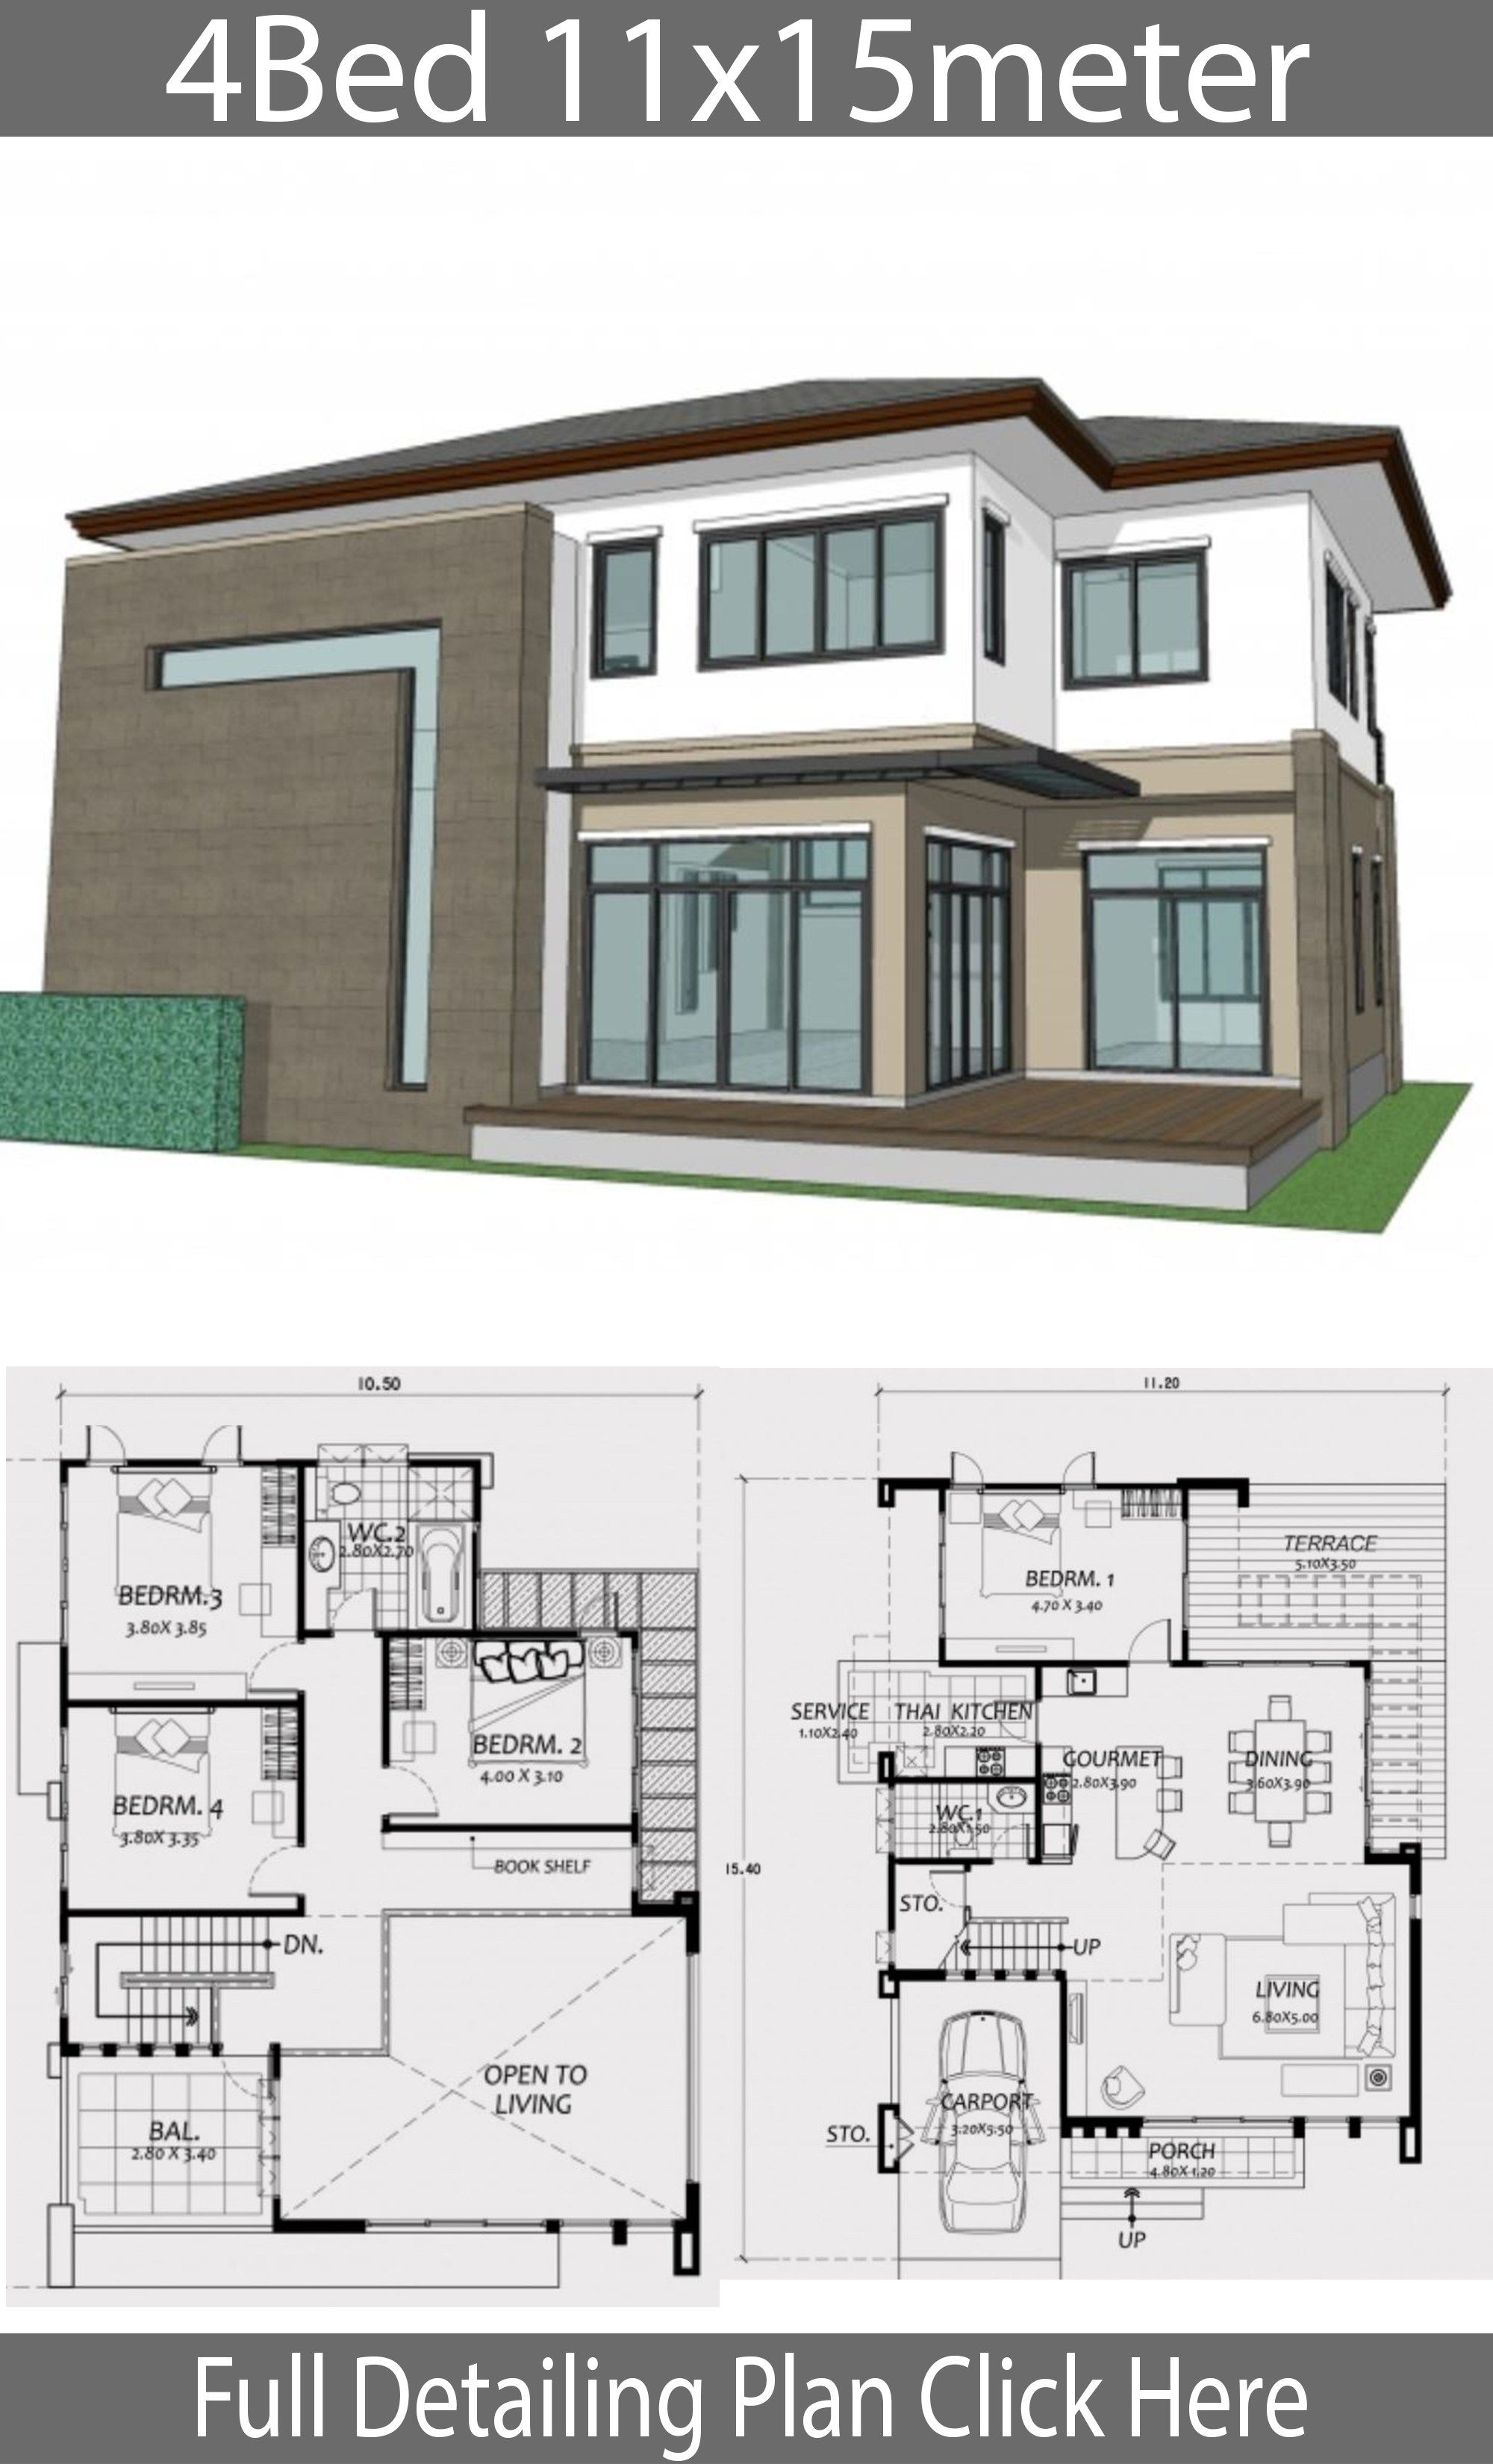 Home Design 11x15m With 4 Bedrooms Home Plans Duplex House Design Small House Design Plans Beautiful House Plans